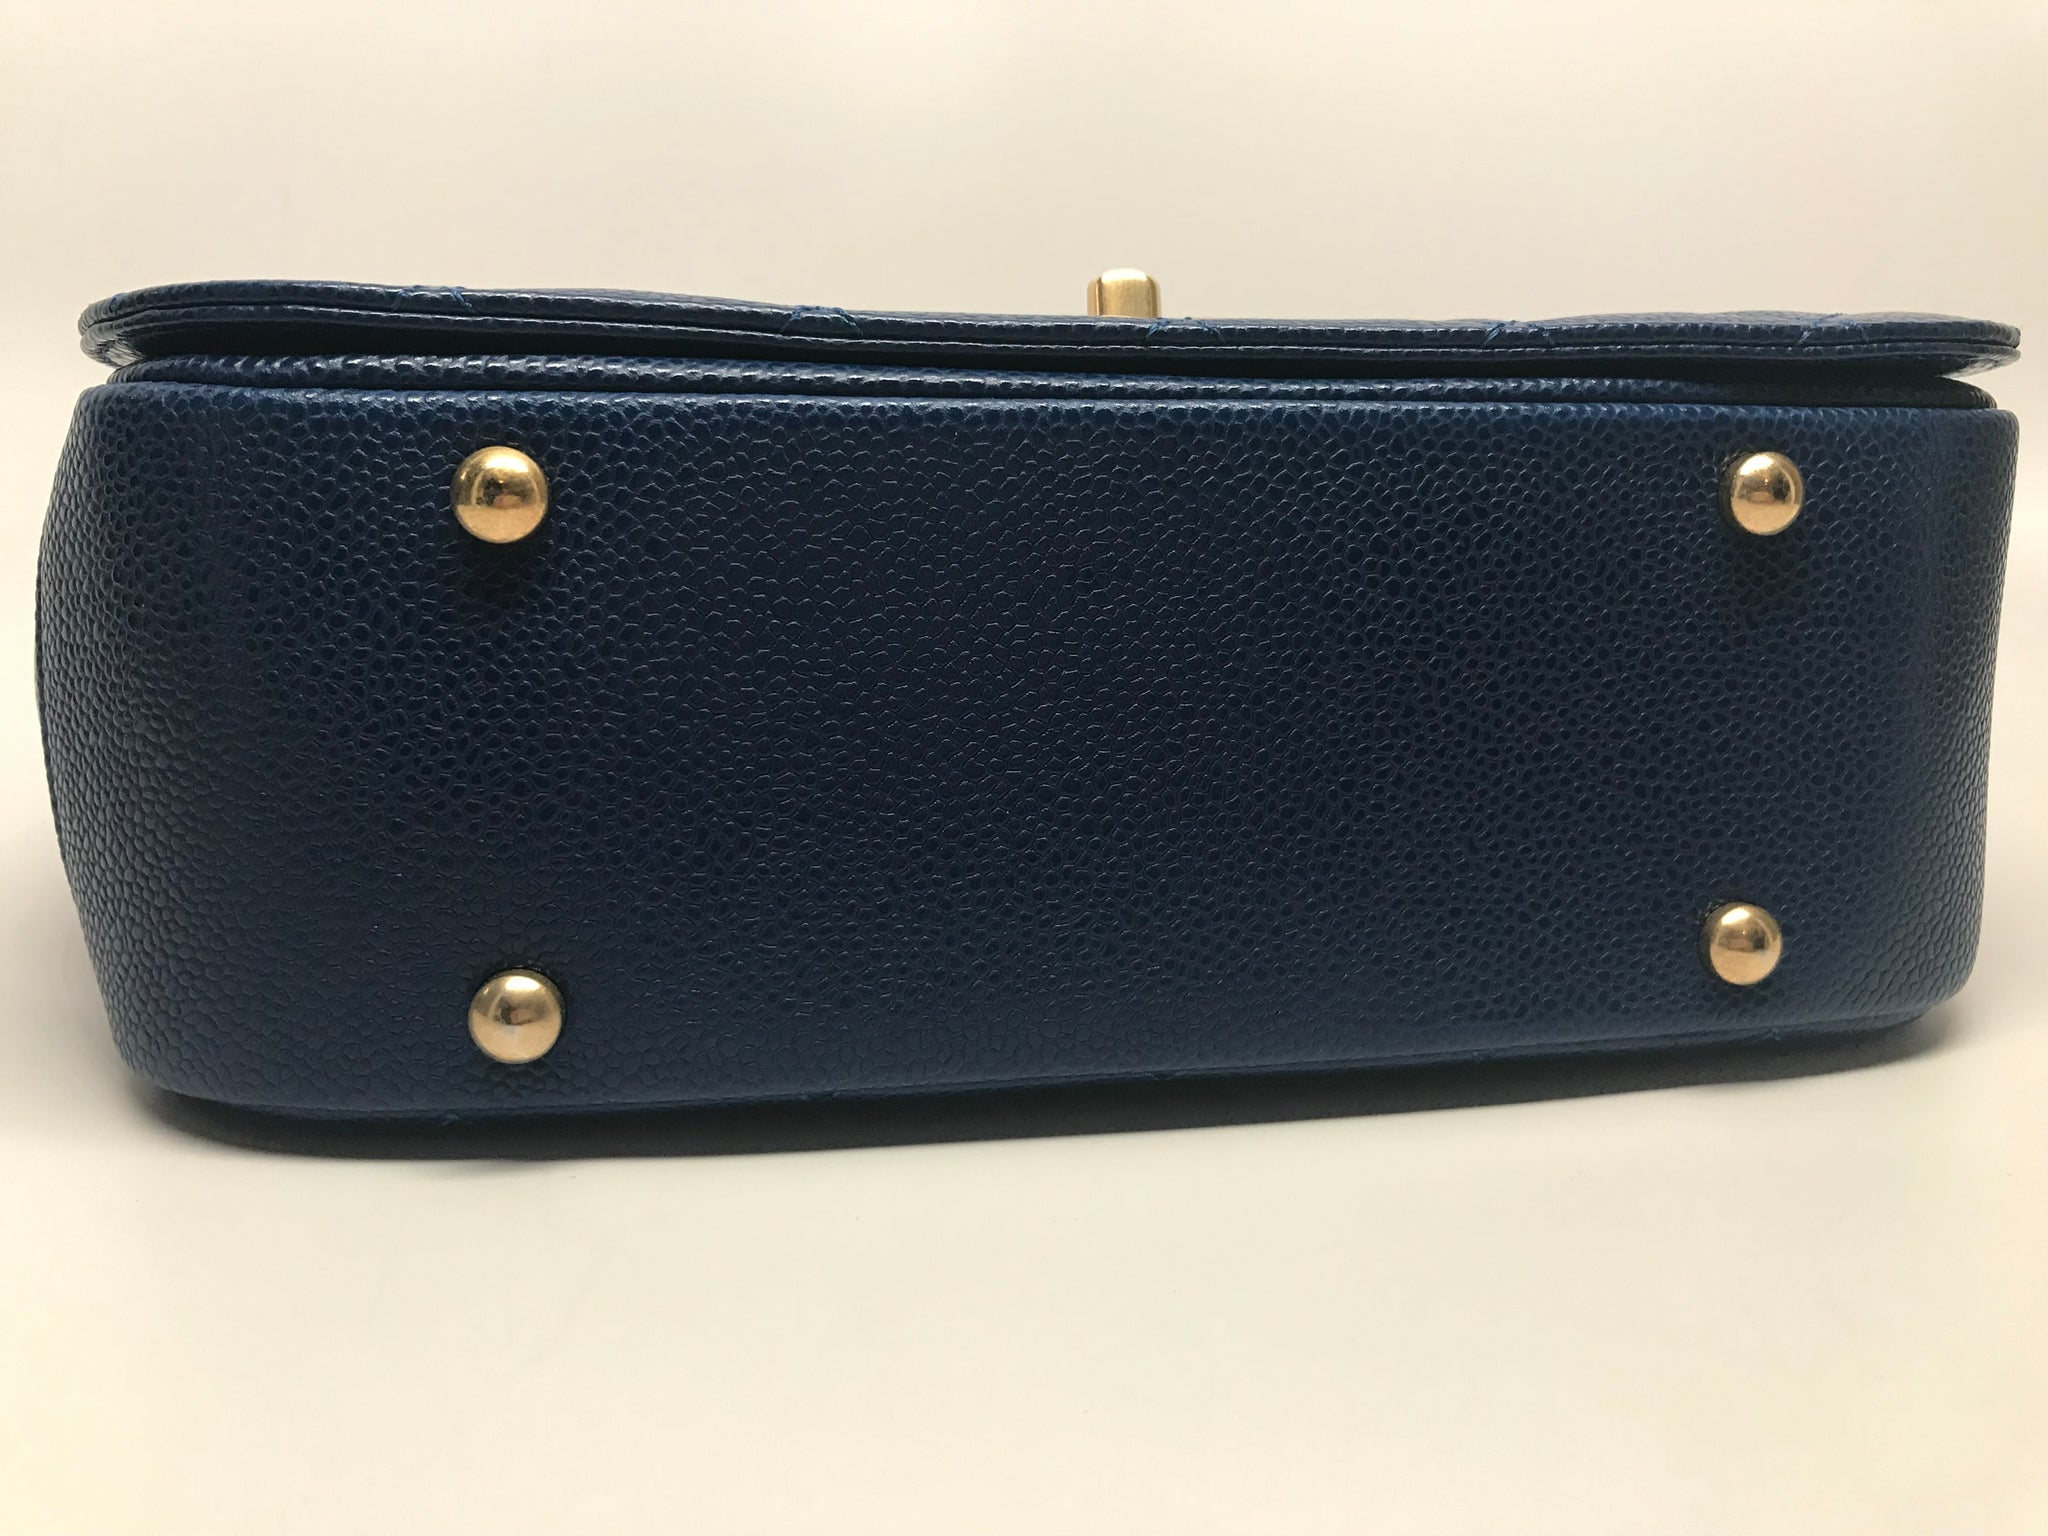 CHANEL CARRY AROUND FLAP BAG IN BLUE CAVIAR LEATHER - MEDIUM